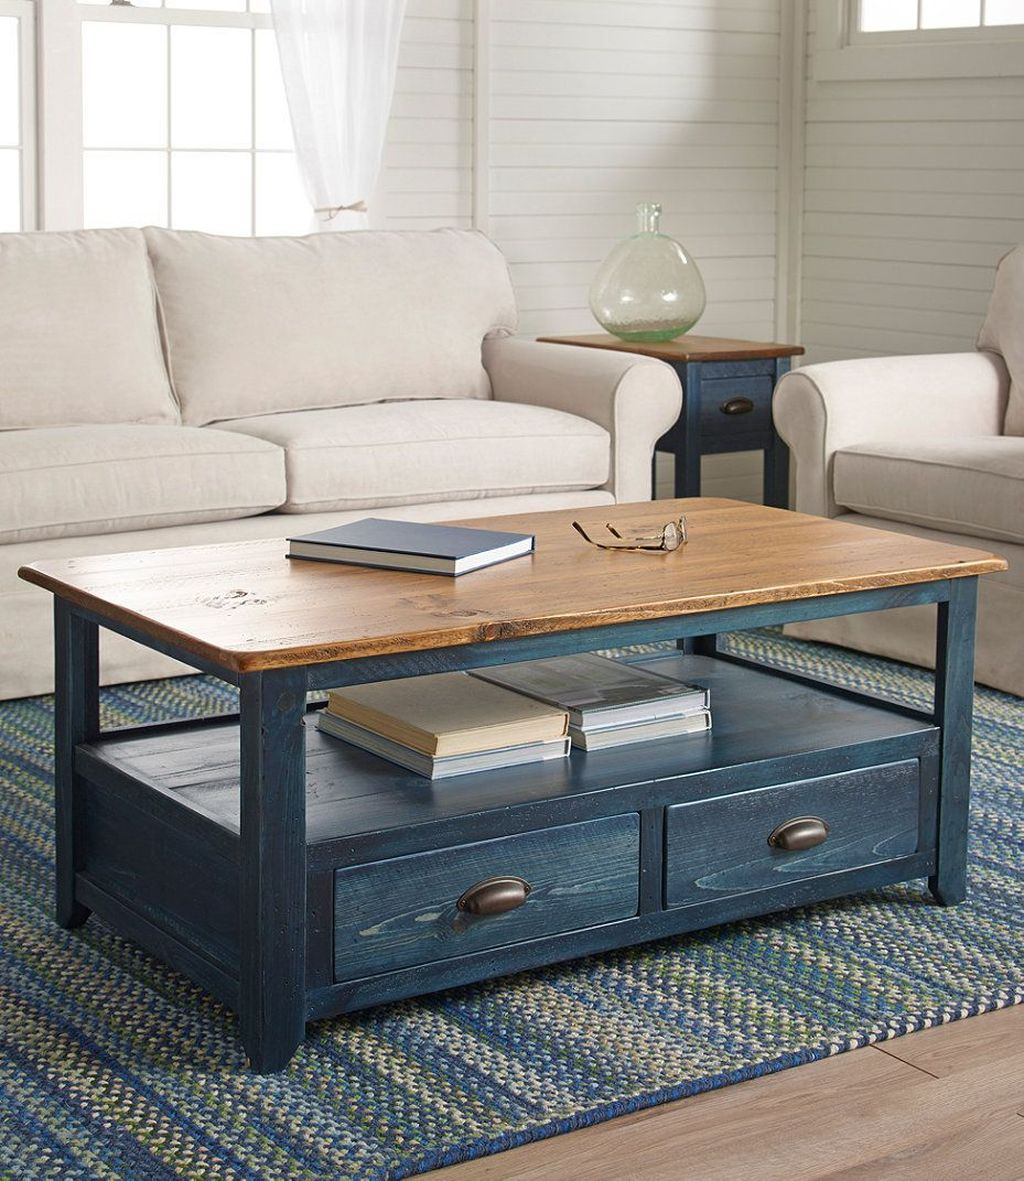 Stunning Coffee Table Design Ideas To Decorate Your Living Room 29